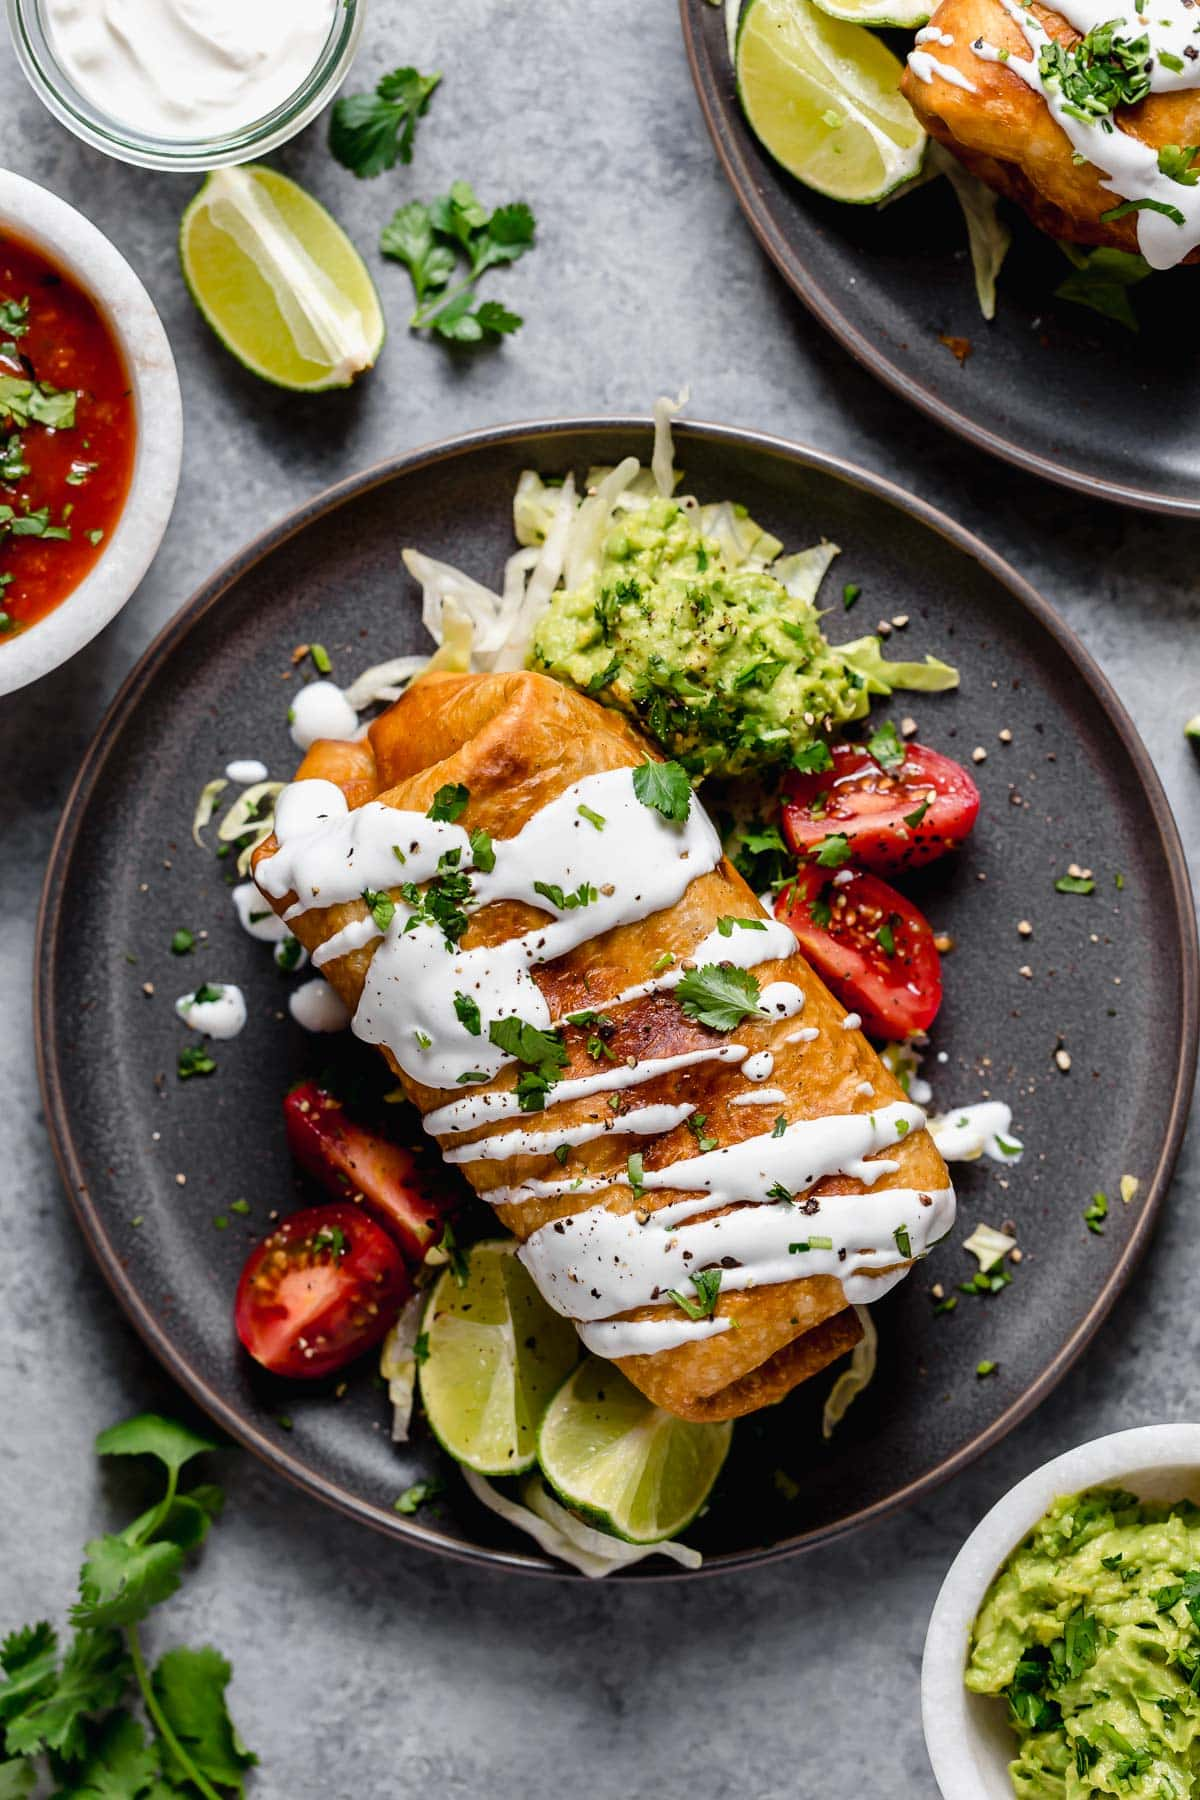 Chimichanga on a dark plate garnished with guacamole, sour cream, tomatoes and cilantro.